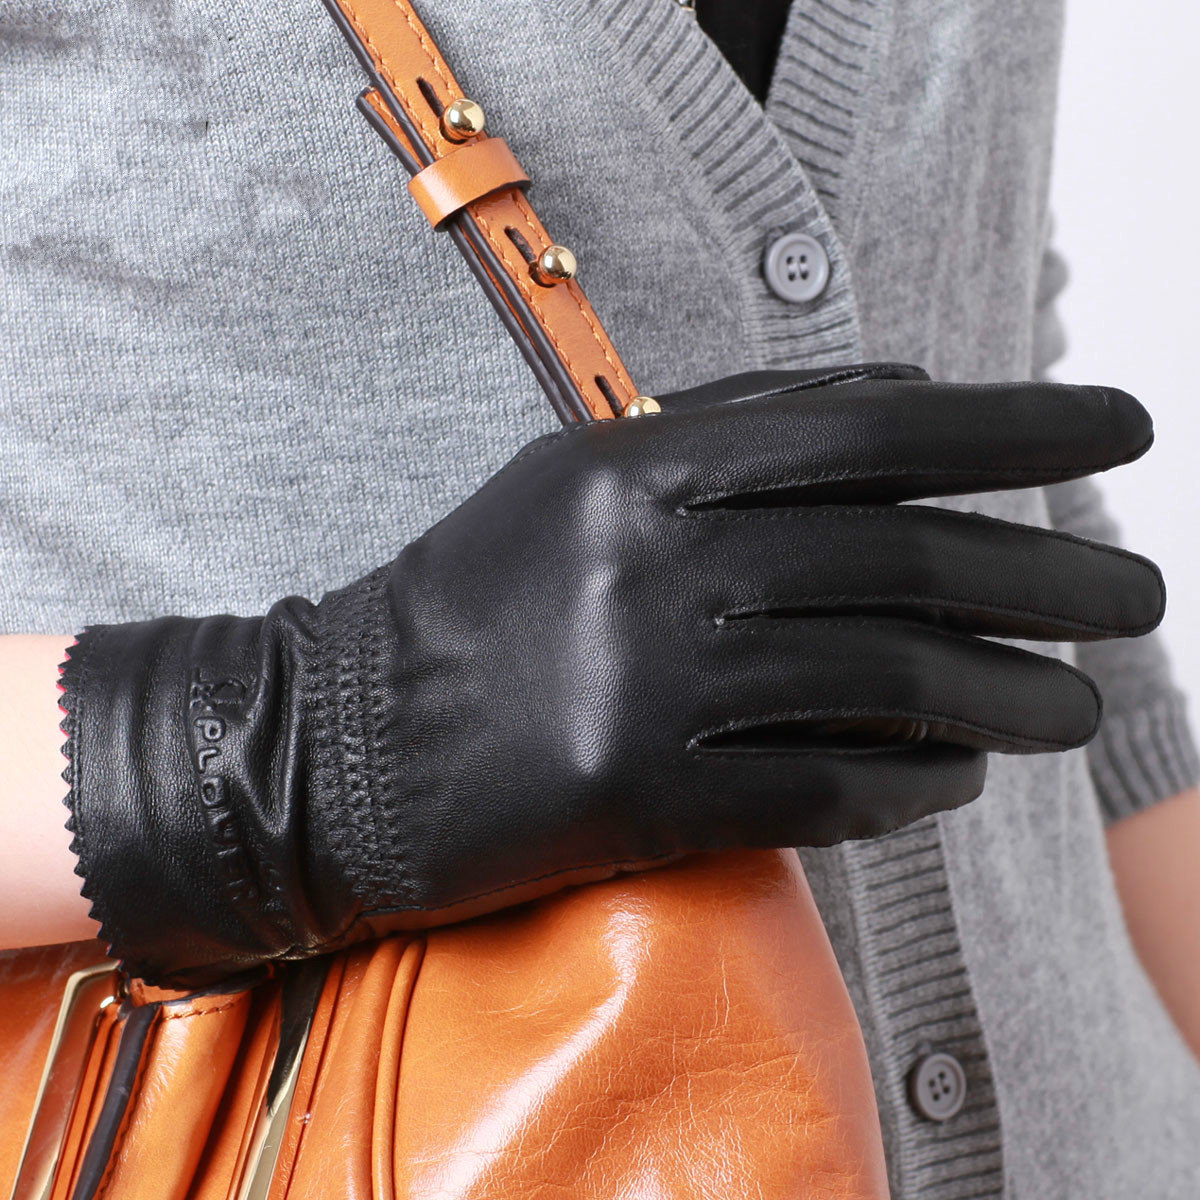 Ladies leather gloves nz - Genuine Leather Gloves Fashion Women Warm Winter Gloves Long Wrist 100 Sheepskin Natural Leather Guantes